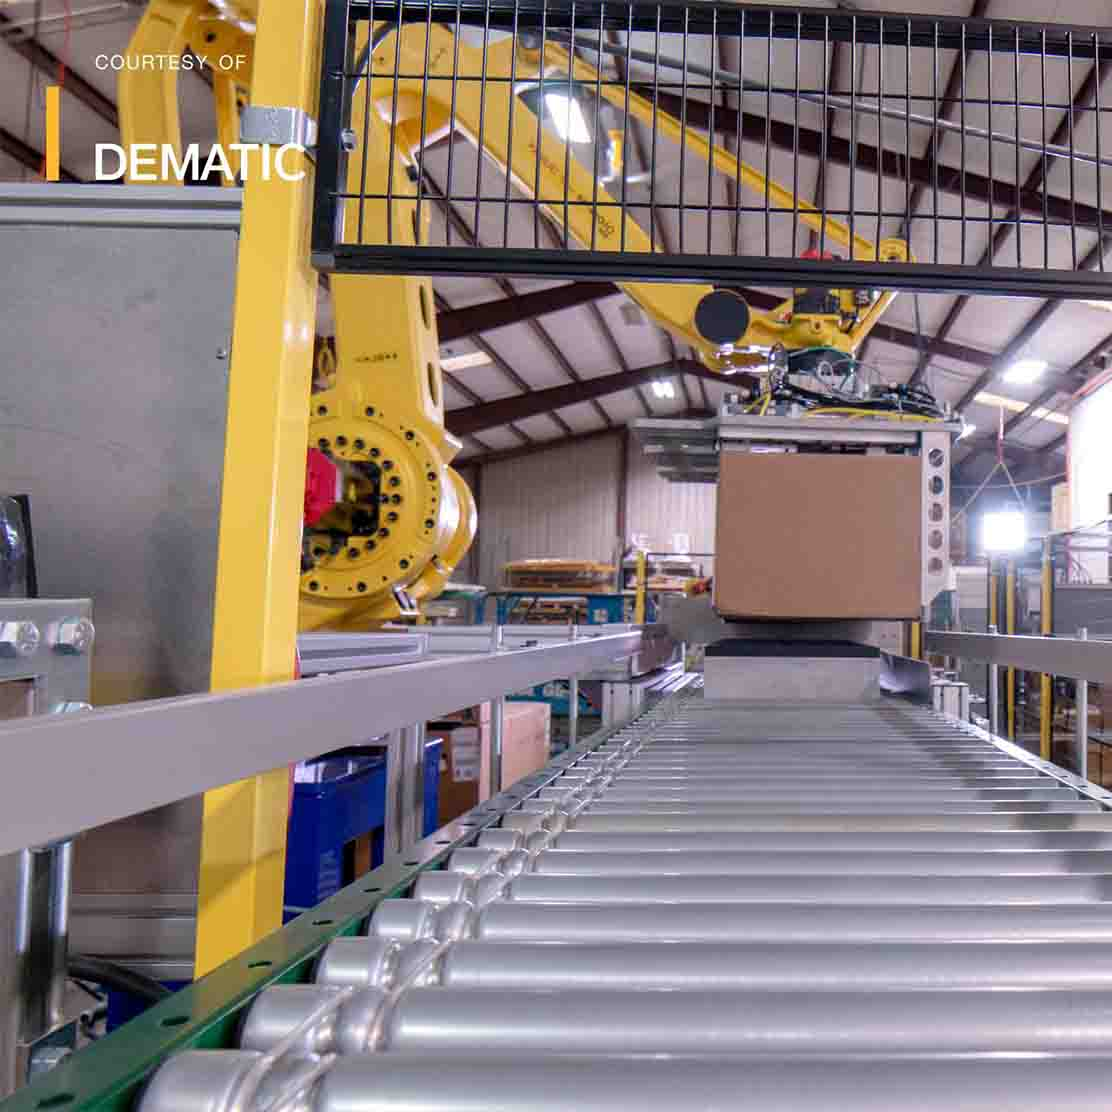 Robotic Palletizing 2 - About Dematic - Shoppa's Material Handling